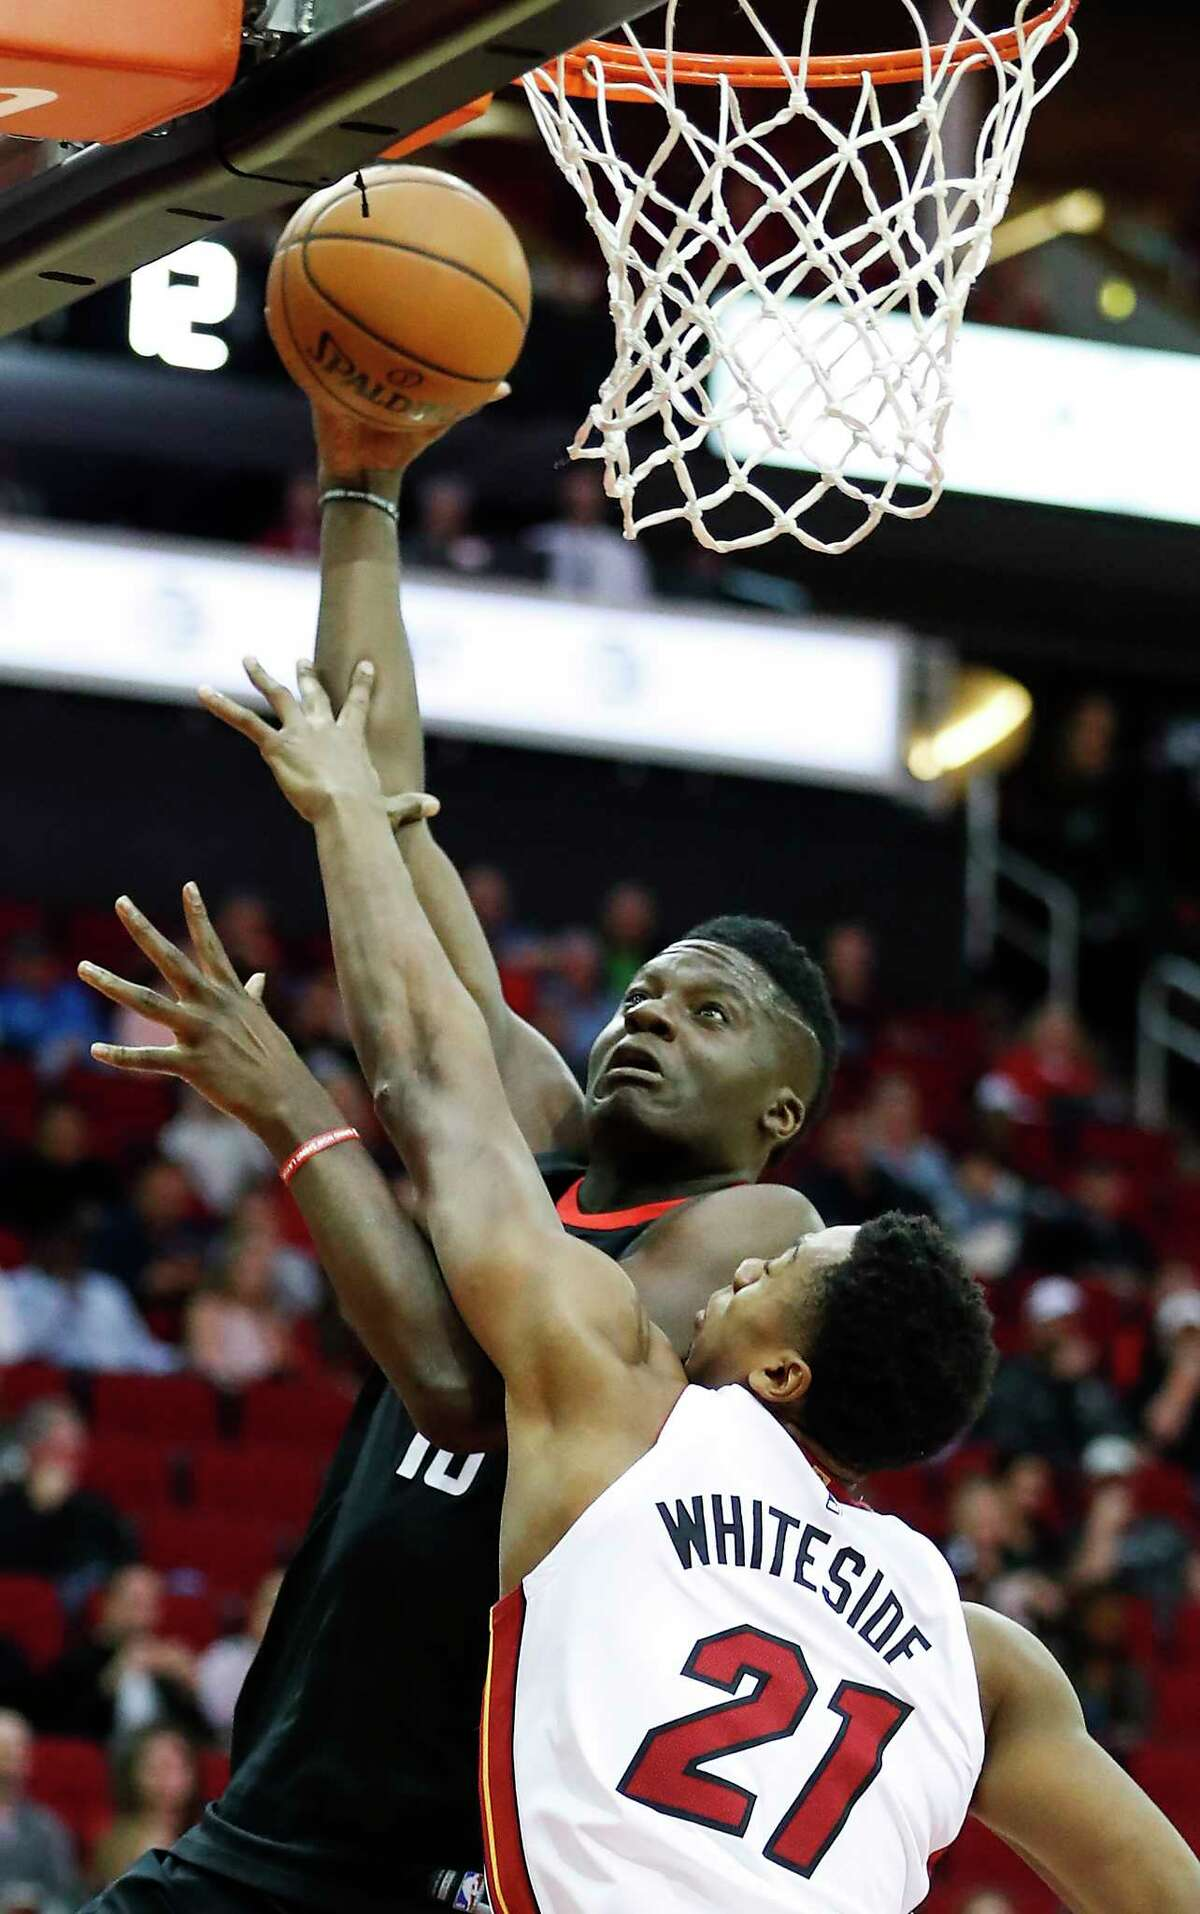 Houston Rockets center Clint Capela (15) shoots a layup over Miami Heat center Hassan Whiteside (21) during the first quarter of an NBA basketball game at Toyota Center on Monday, Jan. 22, 2018, in Houston.